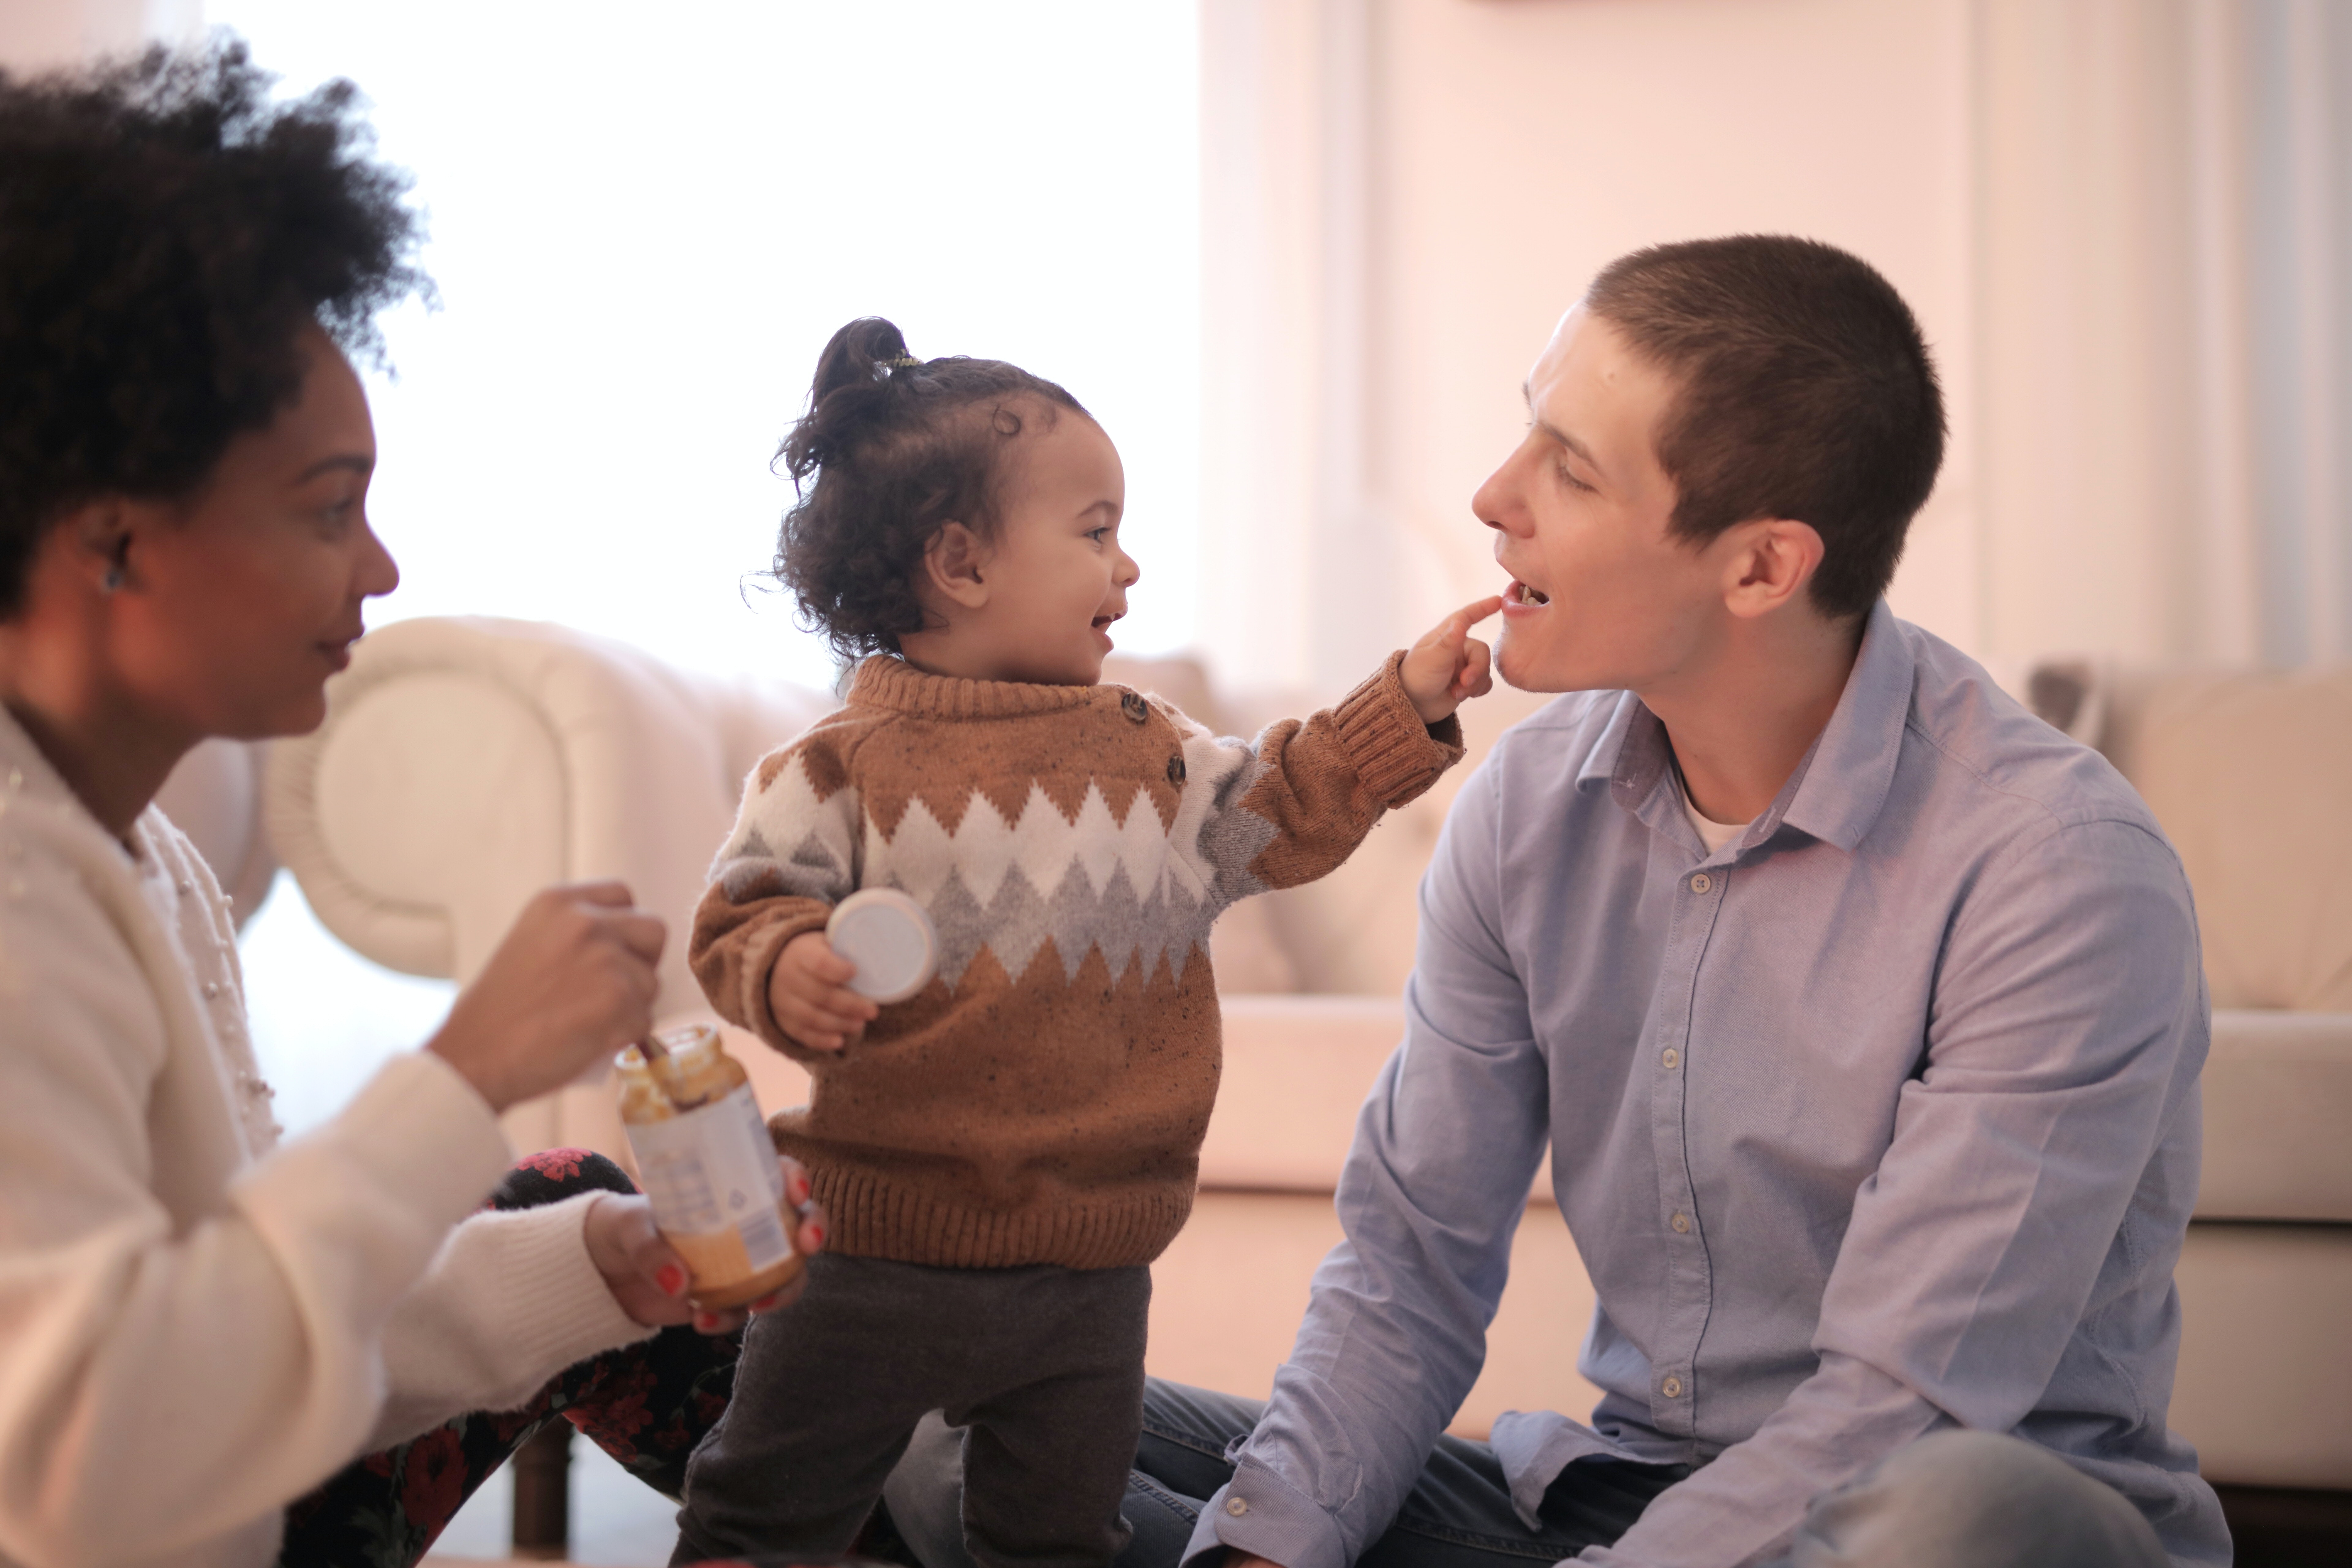 Identifying early signs of speech disorders in children